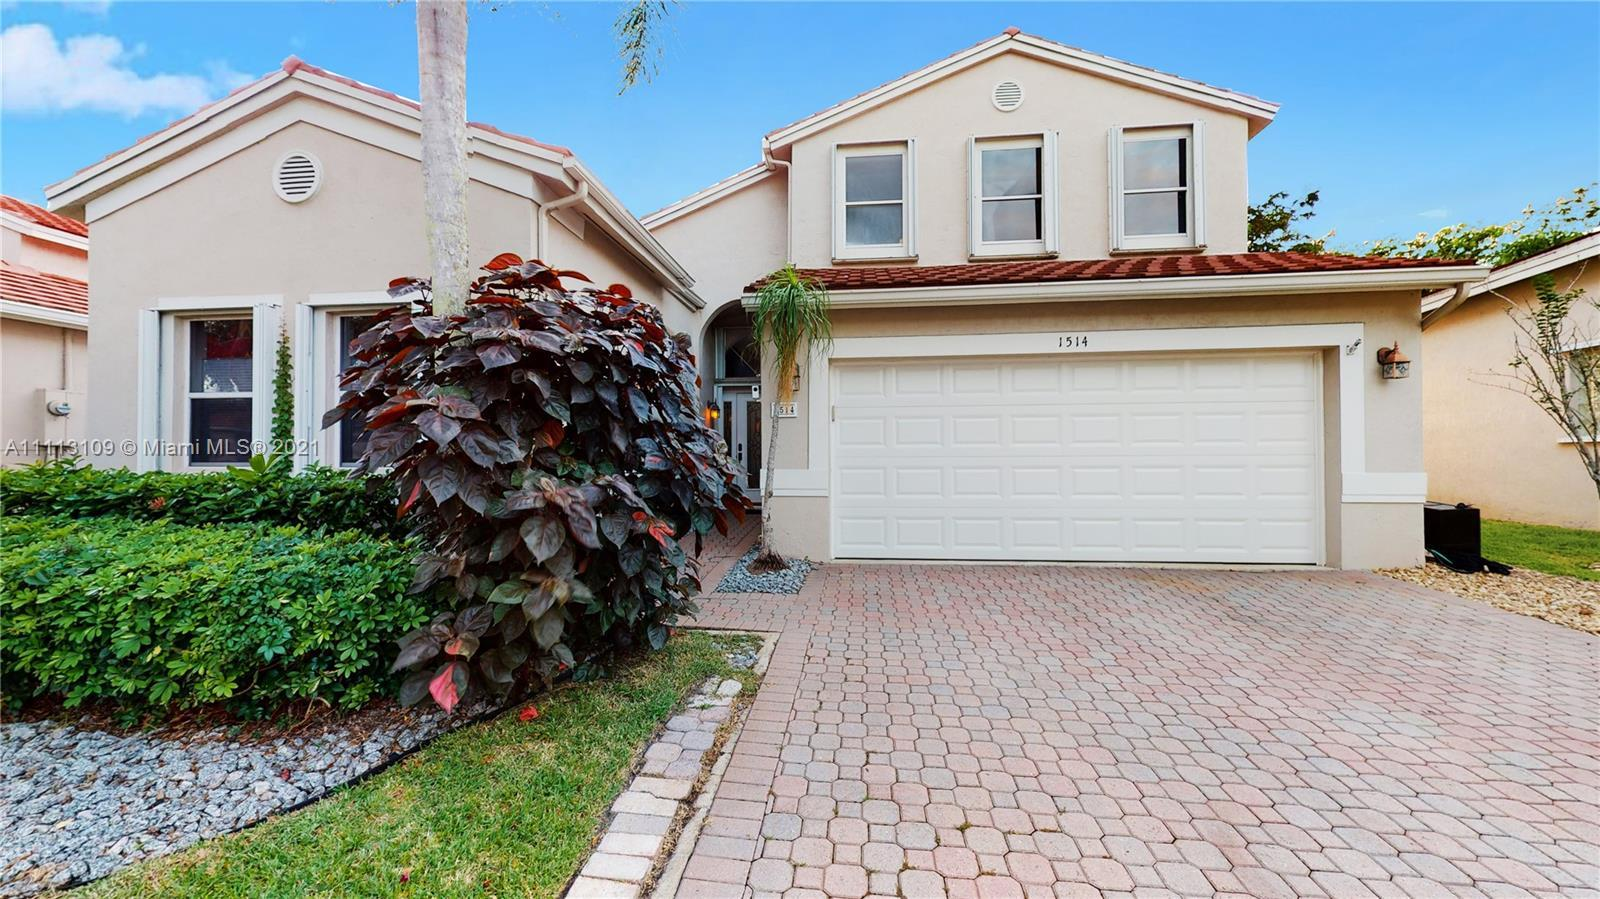 Beautiful lakefront 3 bed/ 2.5 bath single family home in highly desirable Grand Palms Golf Resort.